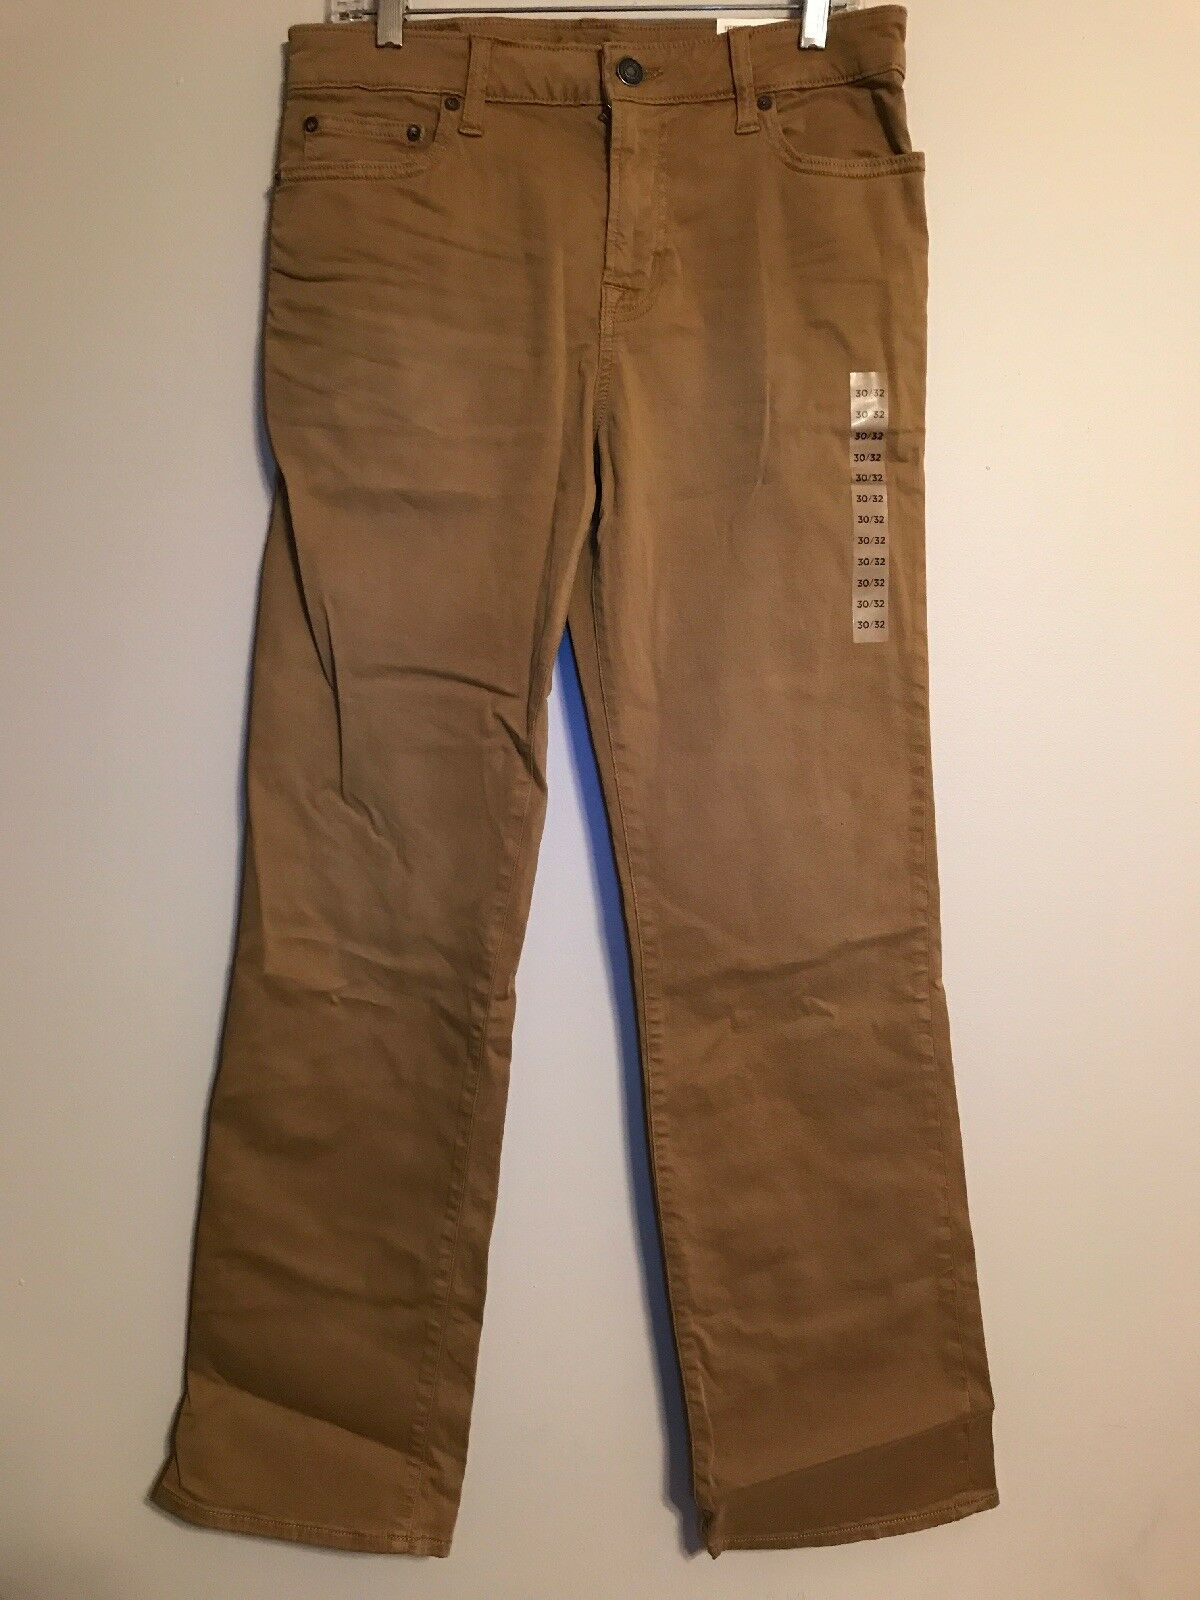 NWT AMERICAN EAGLE Flex Original Boot Pants 30x32 Beige Stretch